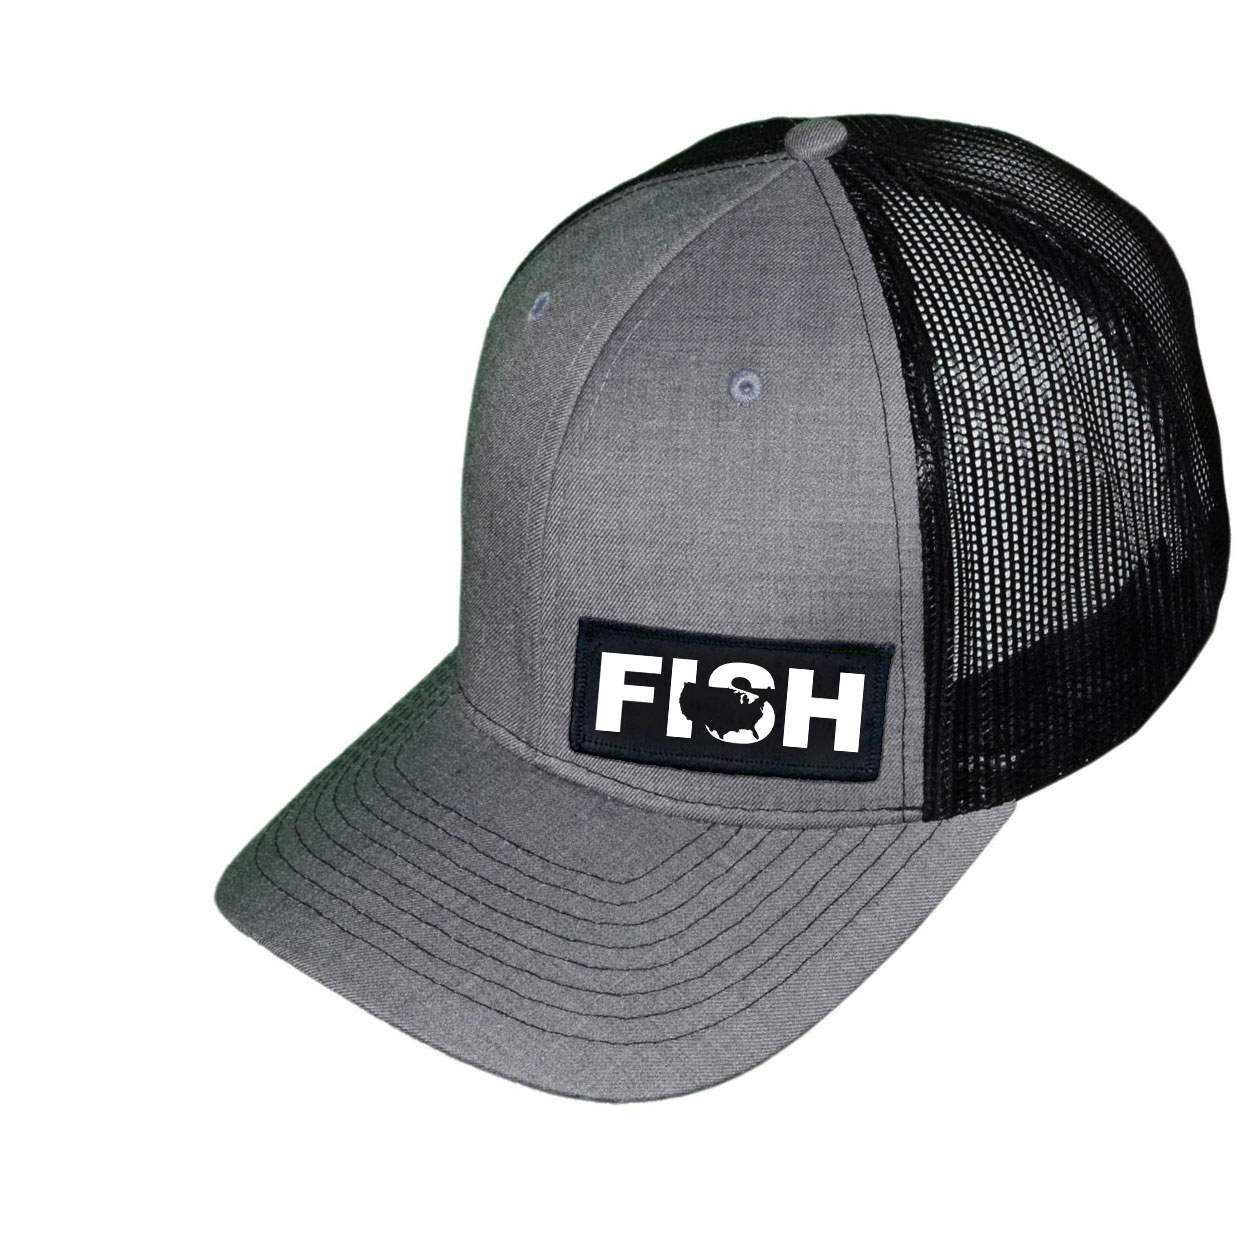 Fish United States Night Out Woven Patch Snapback Trucker Hat Heather Gray/Black (White Logo)